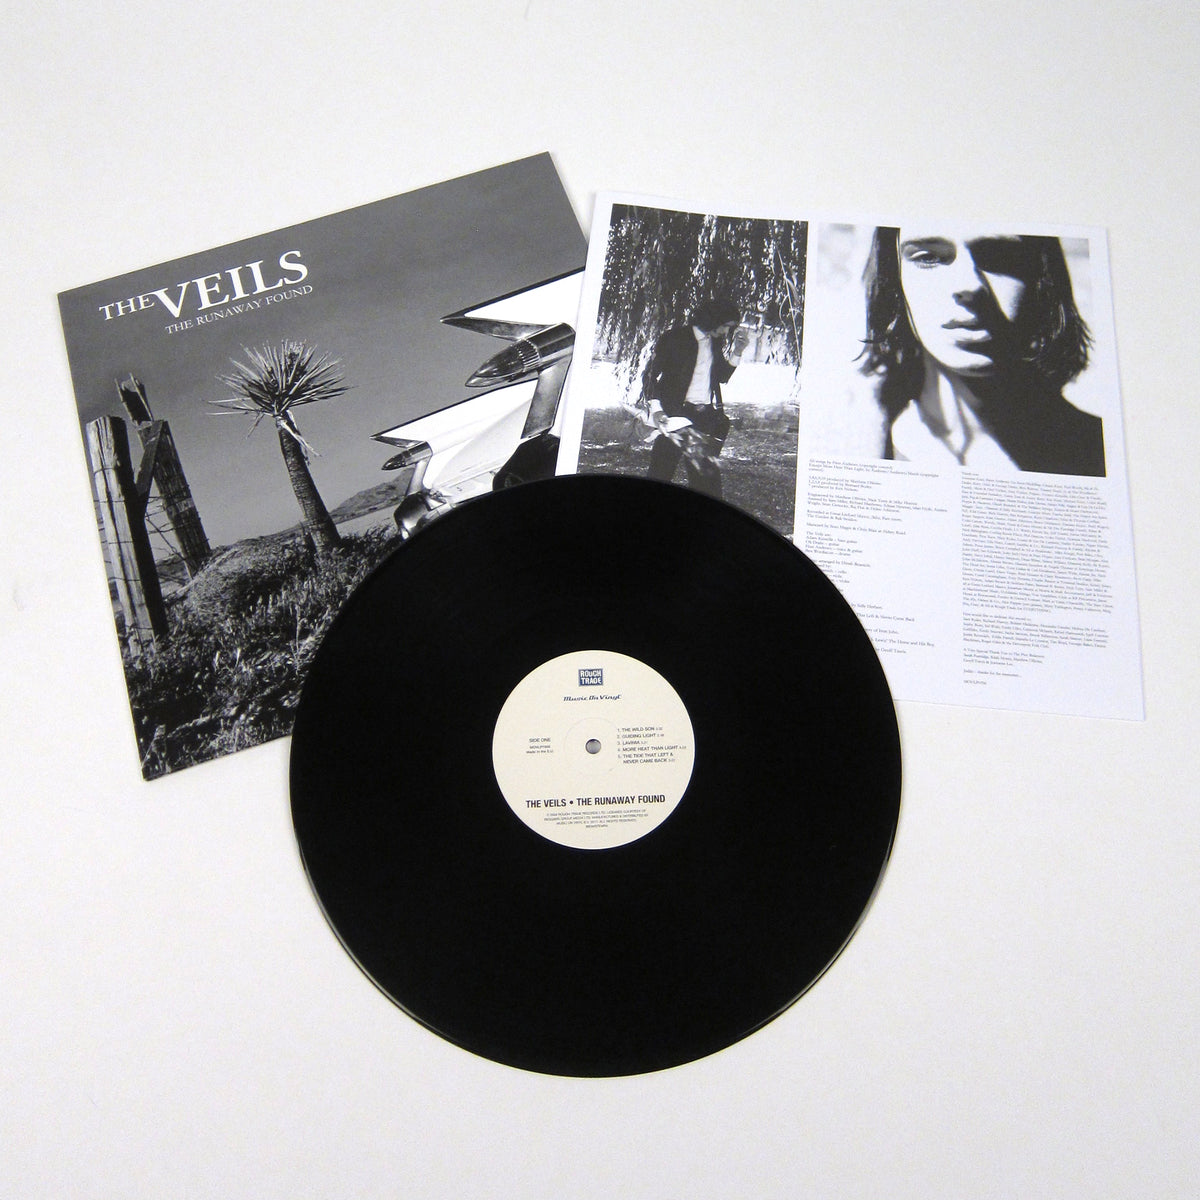 The Veils The Runaway Found Music On Vinyl 180g Vinyl